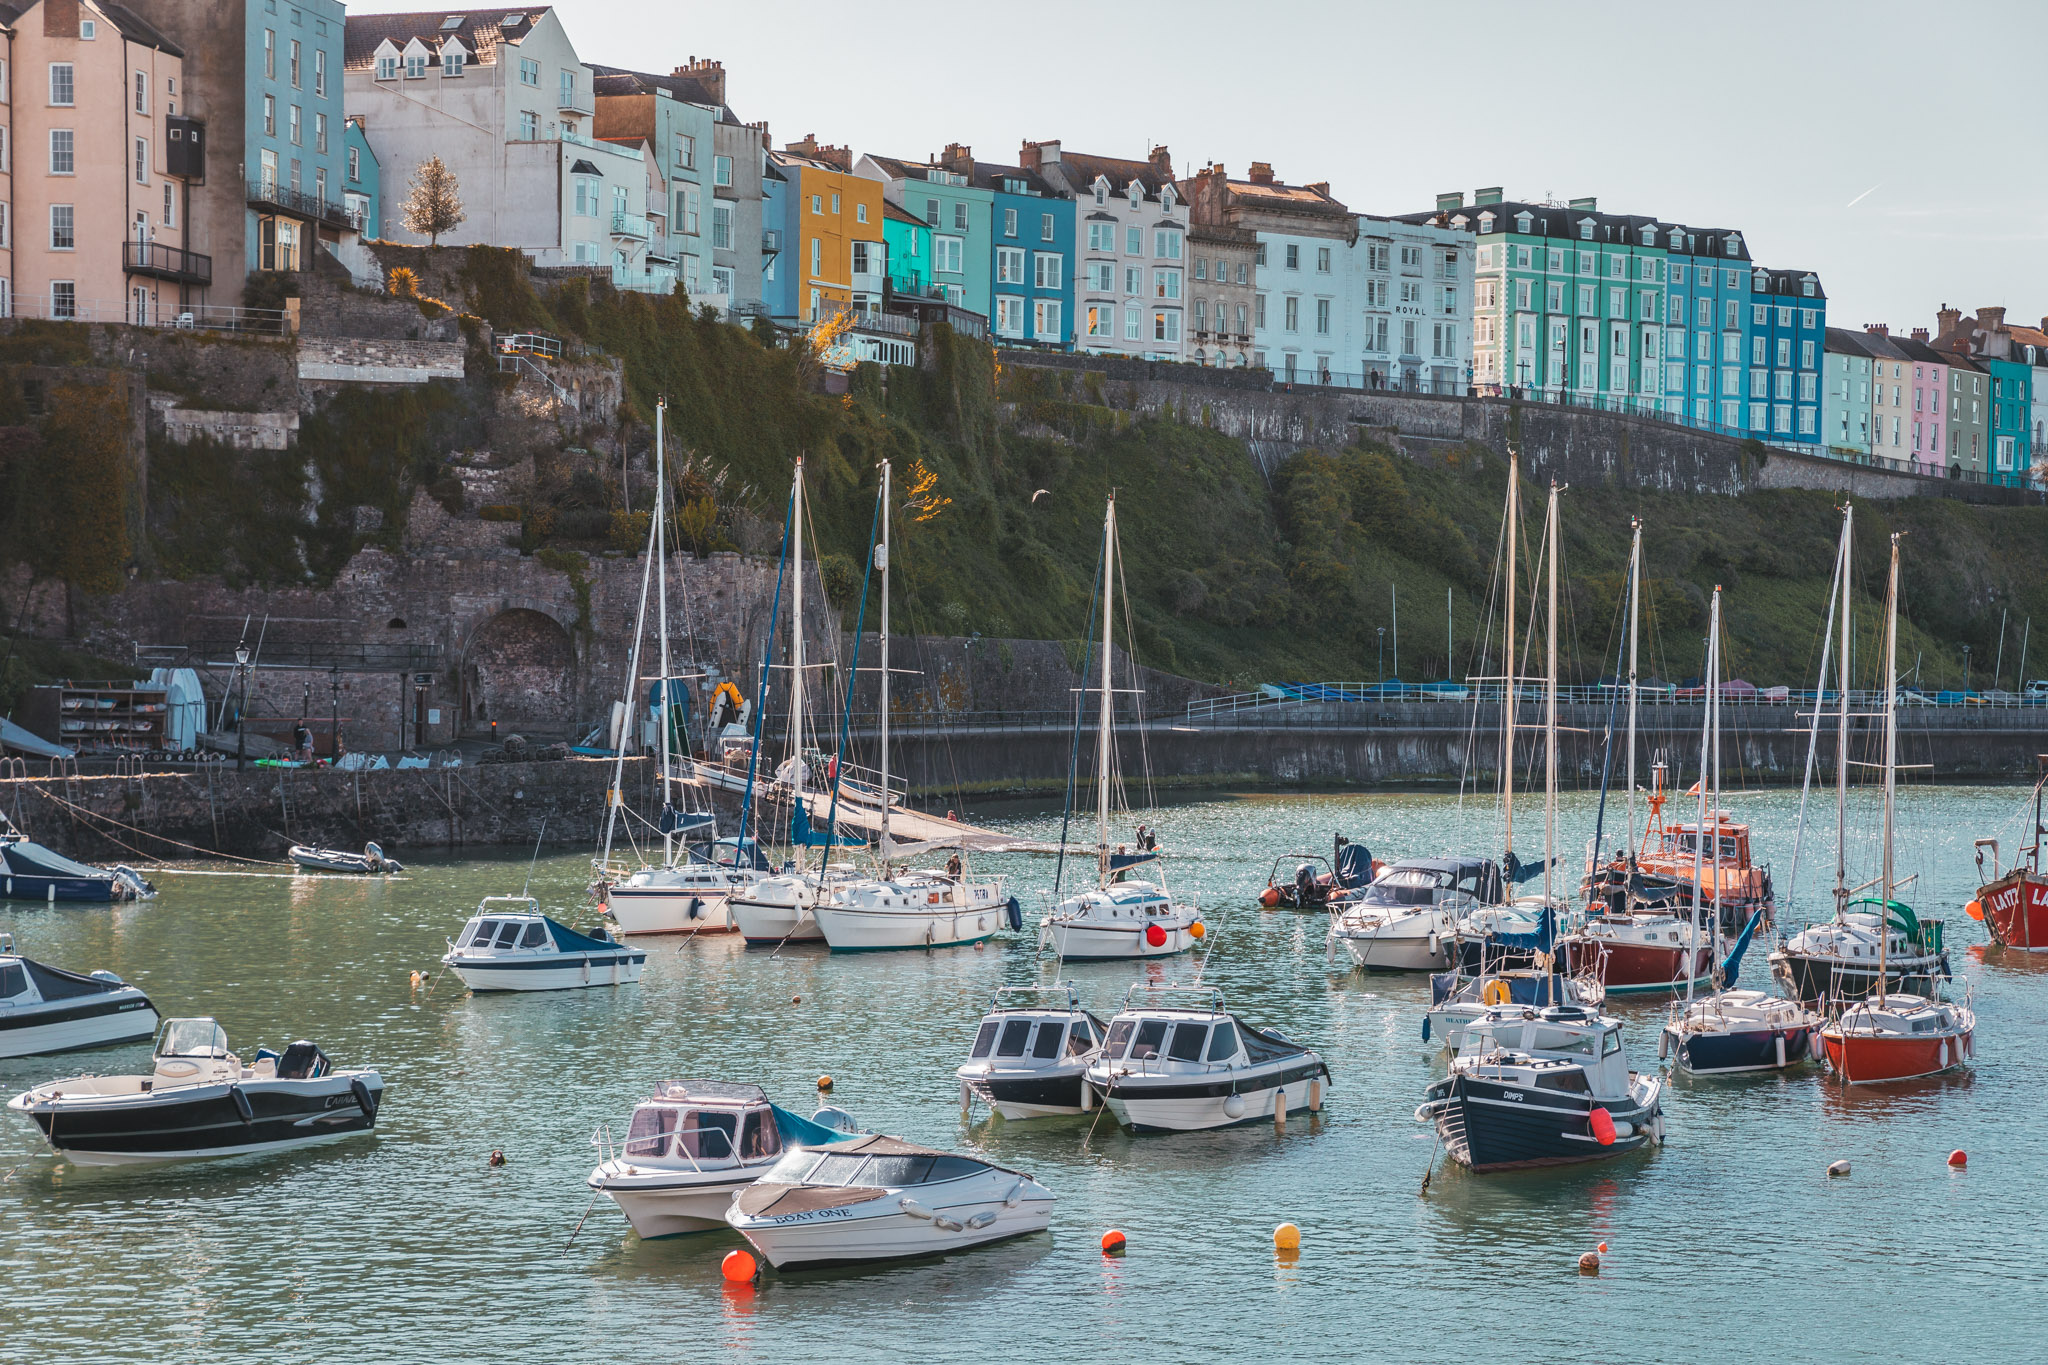 Tenby harbour // The Most Beautiful Places to Visit in Wales // #readysetjetset #wales #uk #welsh #travel #photospots #blogpost